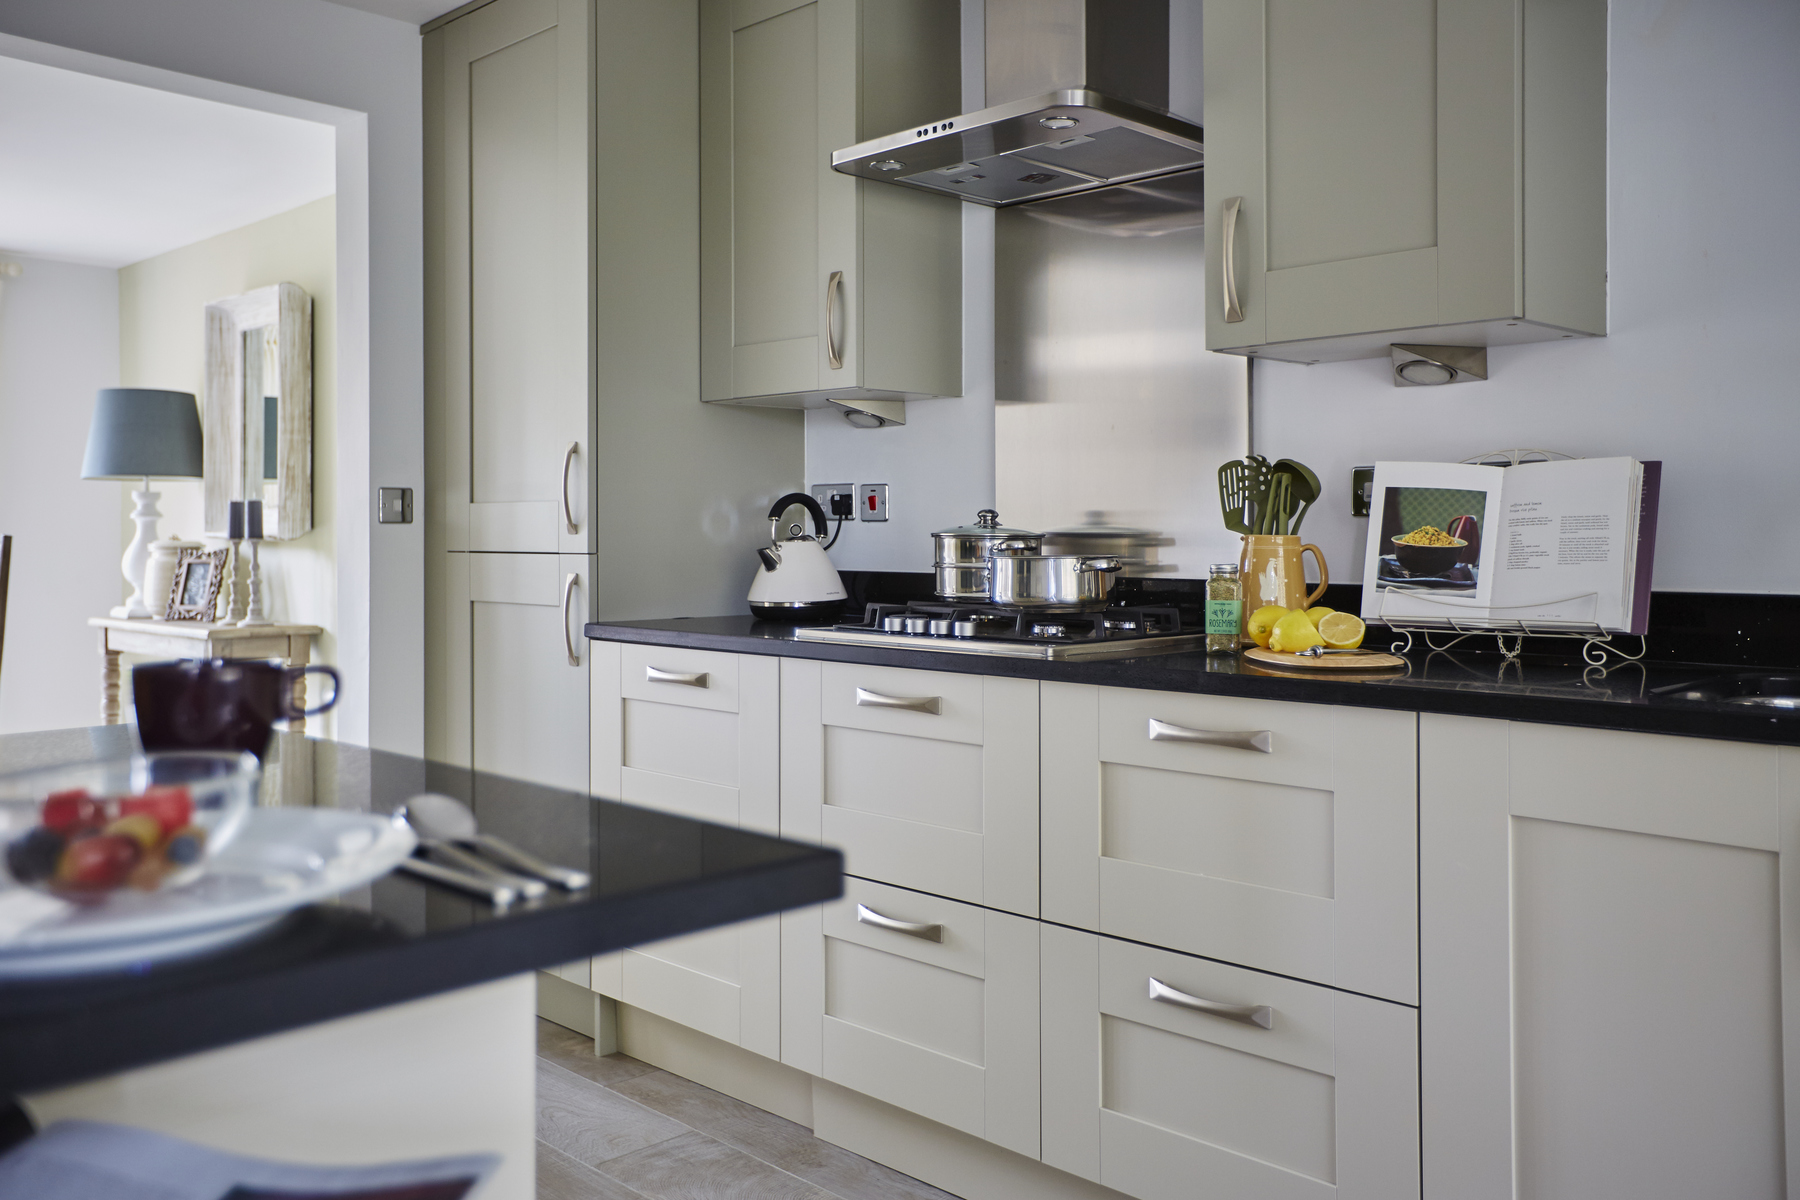 tw_westmids_nursery_meadows_barford_pa49_thornford_kitchen_cameo